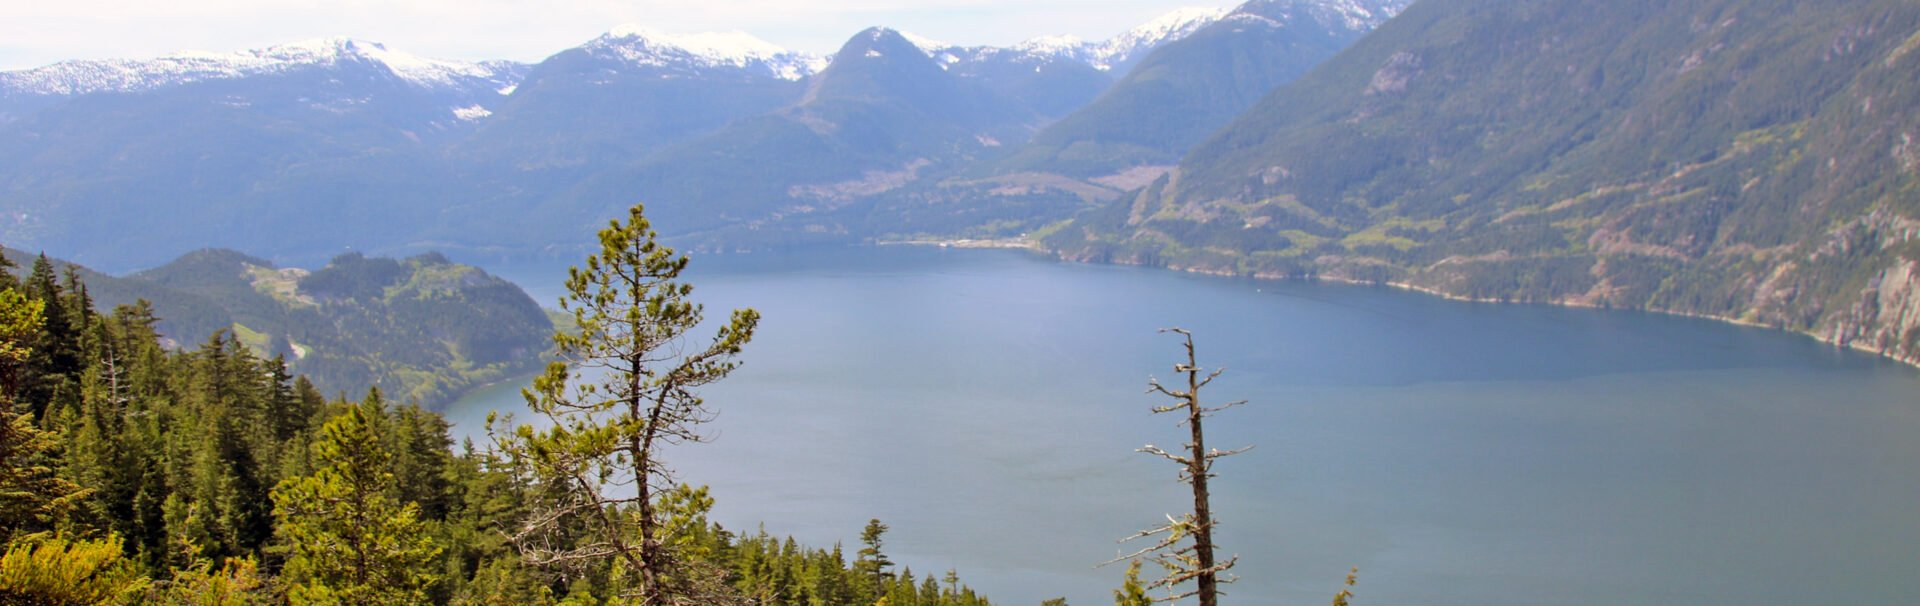 The view of Howe Sound from the Sea To Summit Trail